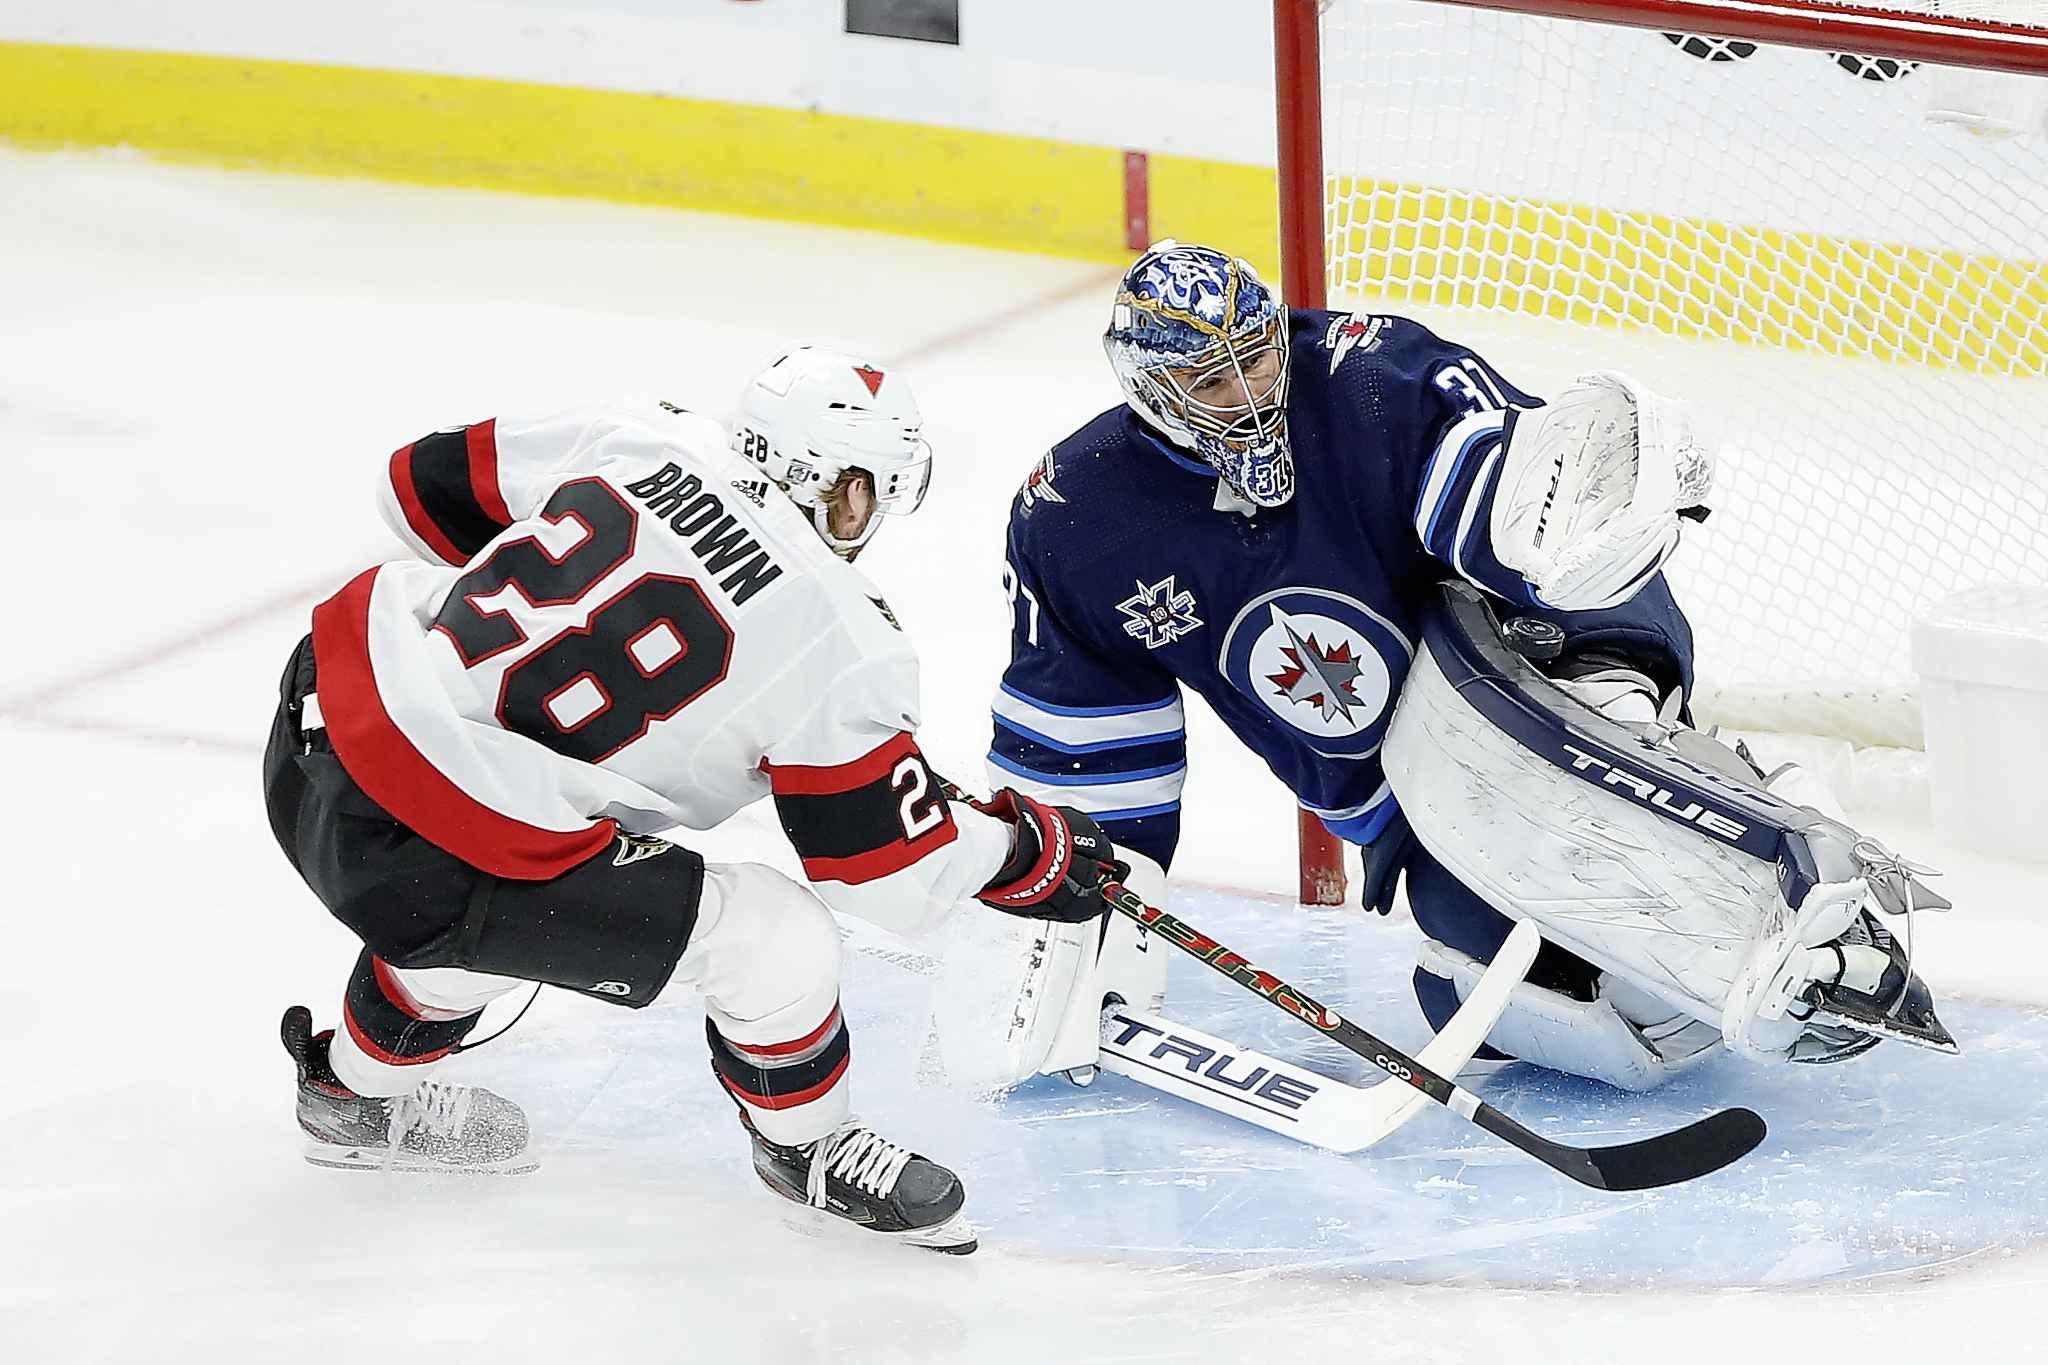 Winnipeg Jets goaltender Connor Hellebuyck (37) saves the shot by Ottawa Senators' Connor Brown (28) during first period NHL action in Winnipeg on Saturday, January 23, 2021. (John Woods / The Canadian Press)